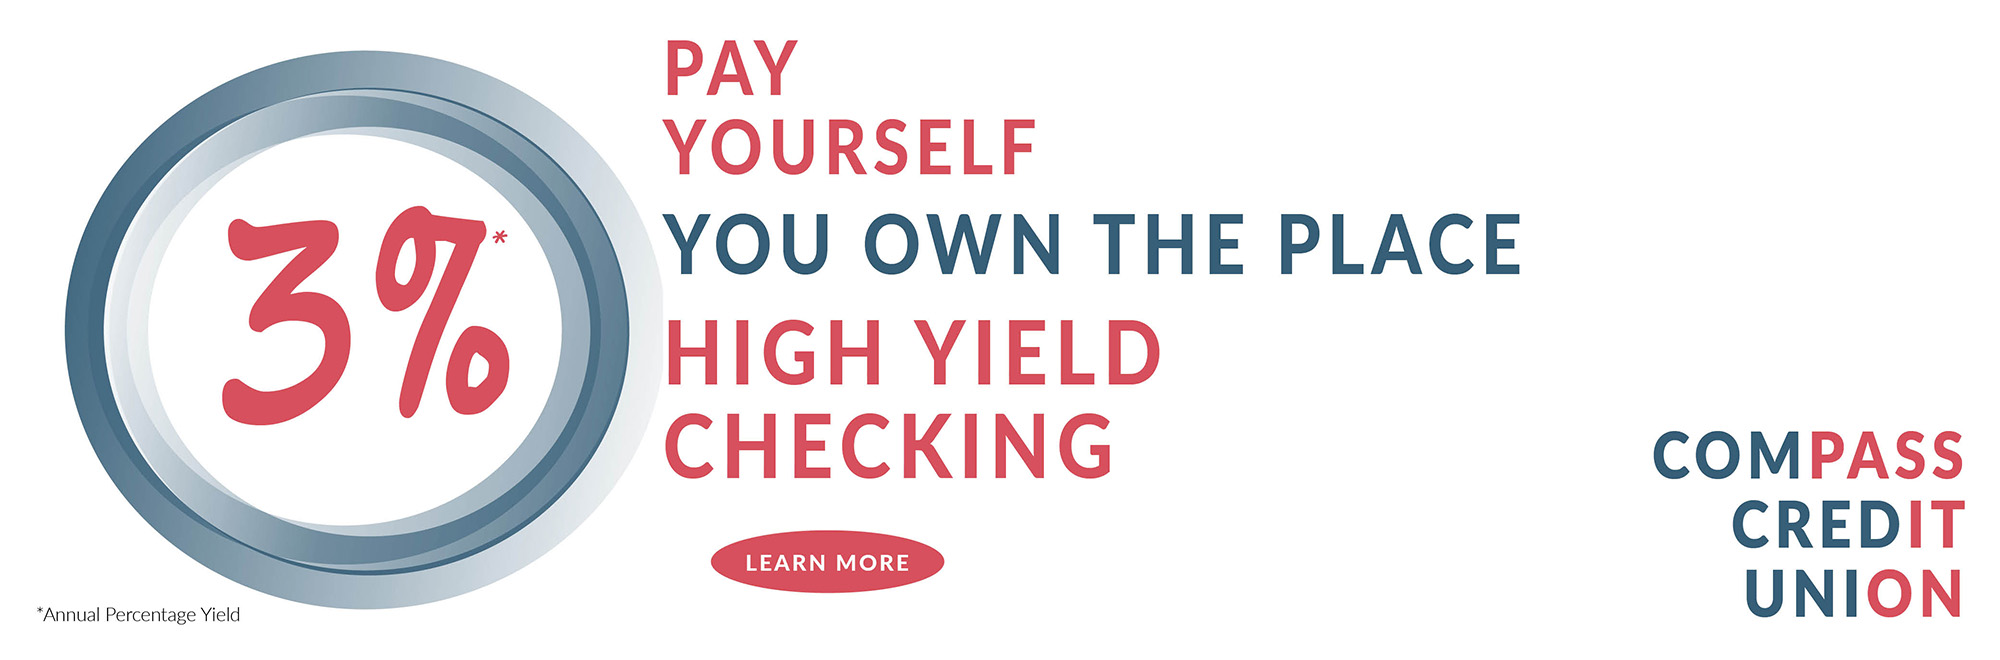 High Yield Checking – Pay Yourself